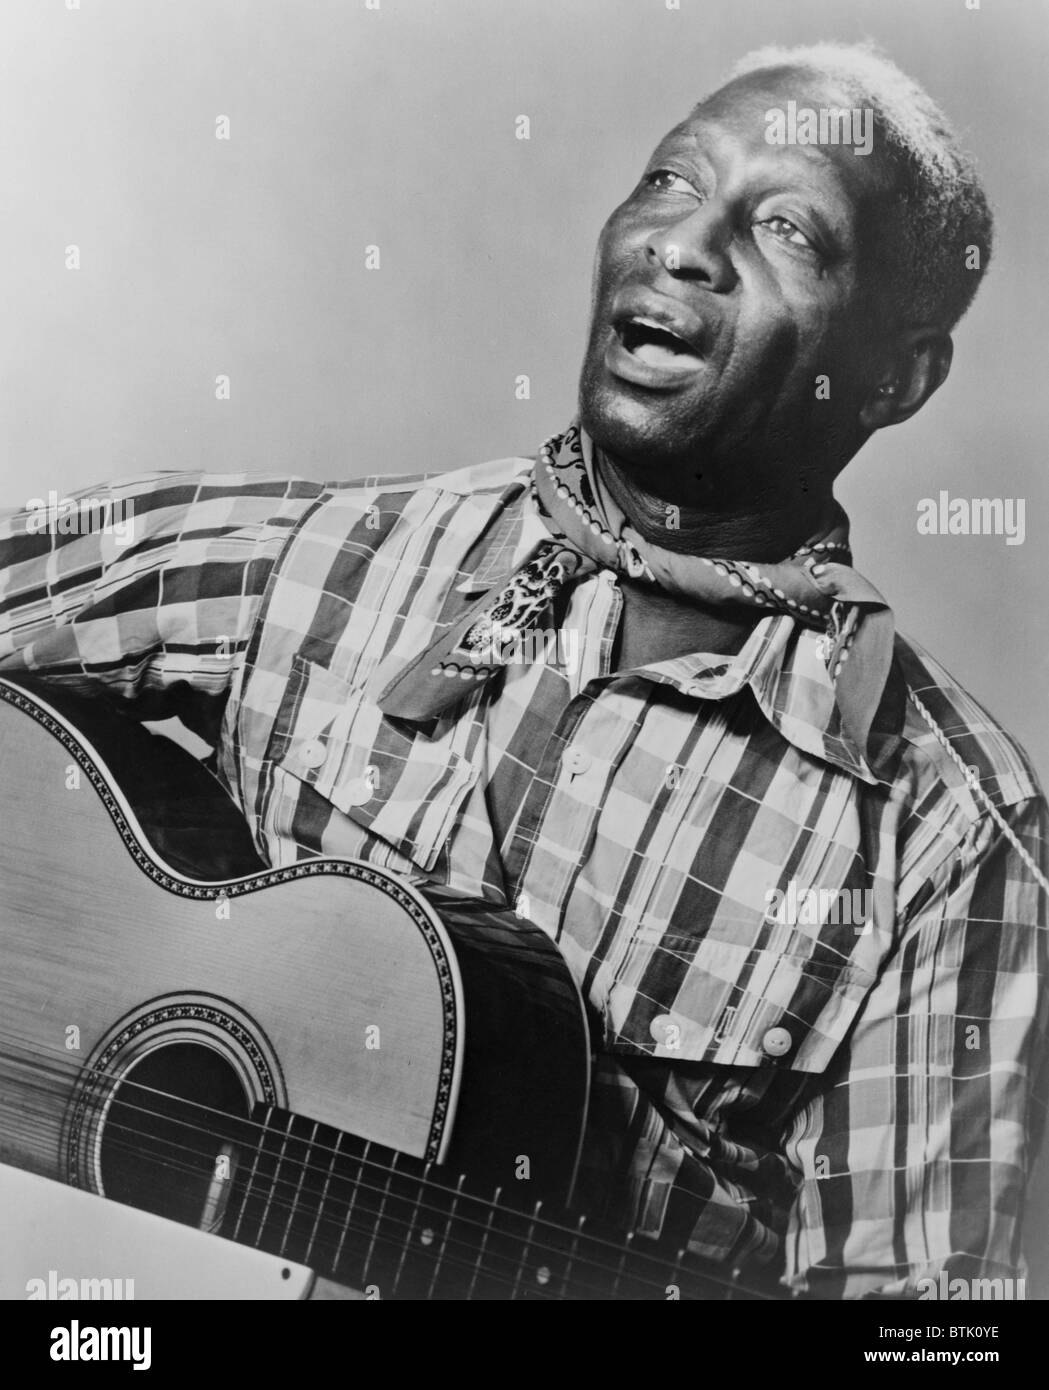 African American Singer SongwriterStock Photos and Images